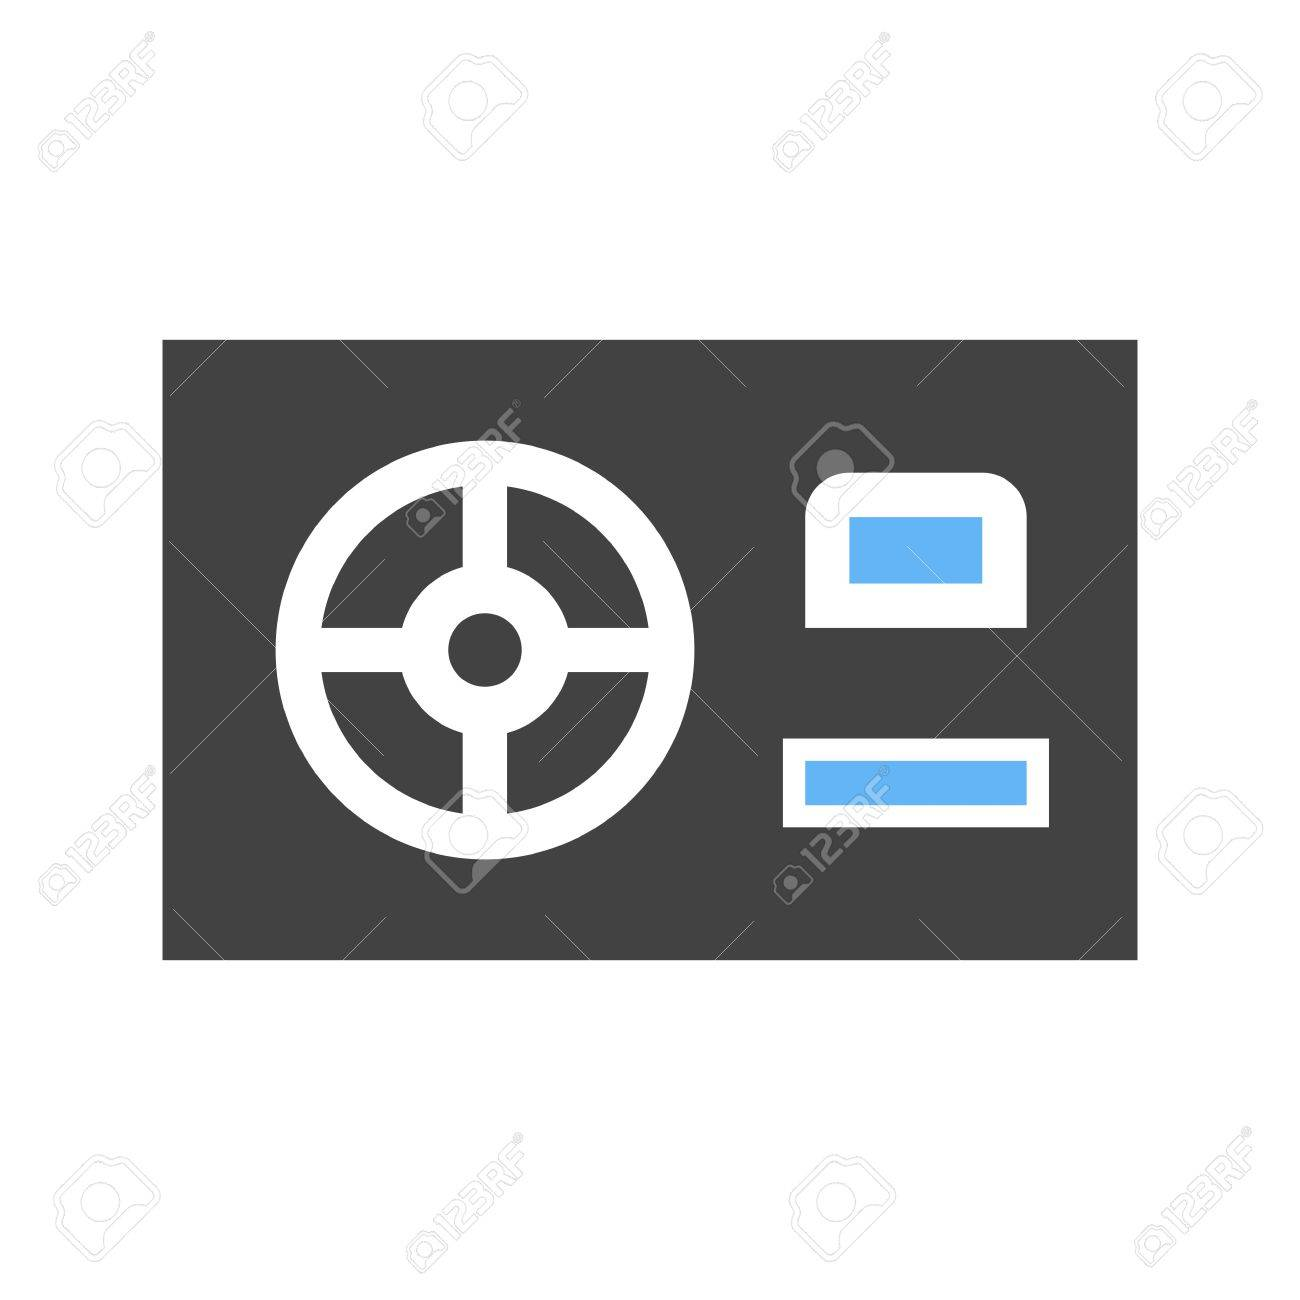 power supply hdmi computer icon vector image can also be used royalty free cliparts vectors and stock illustration image 41386854 123rf com